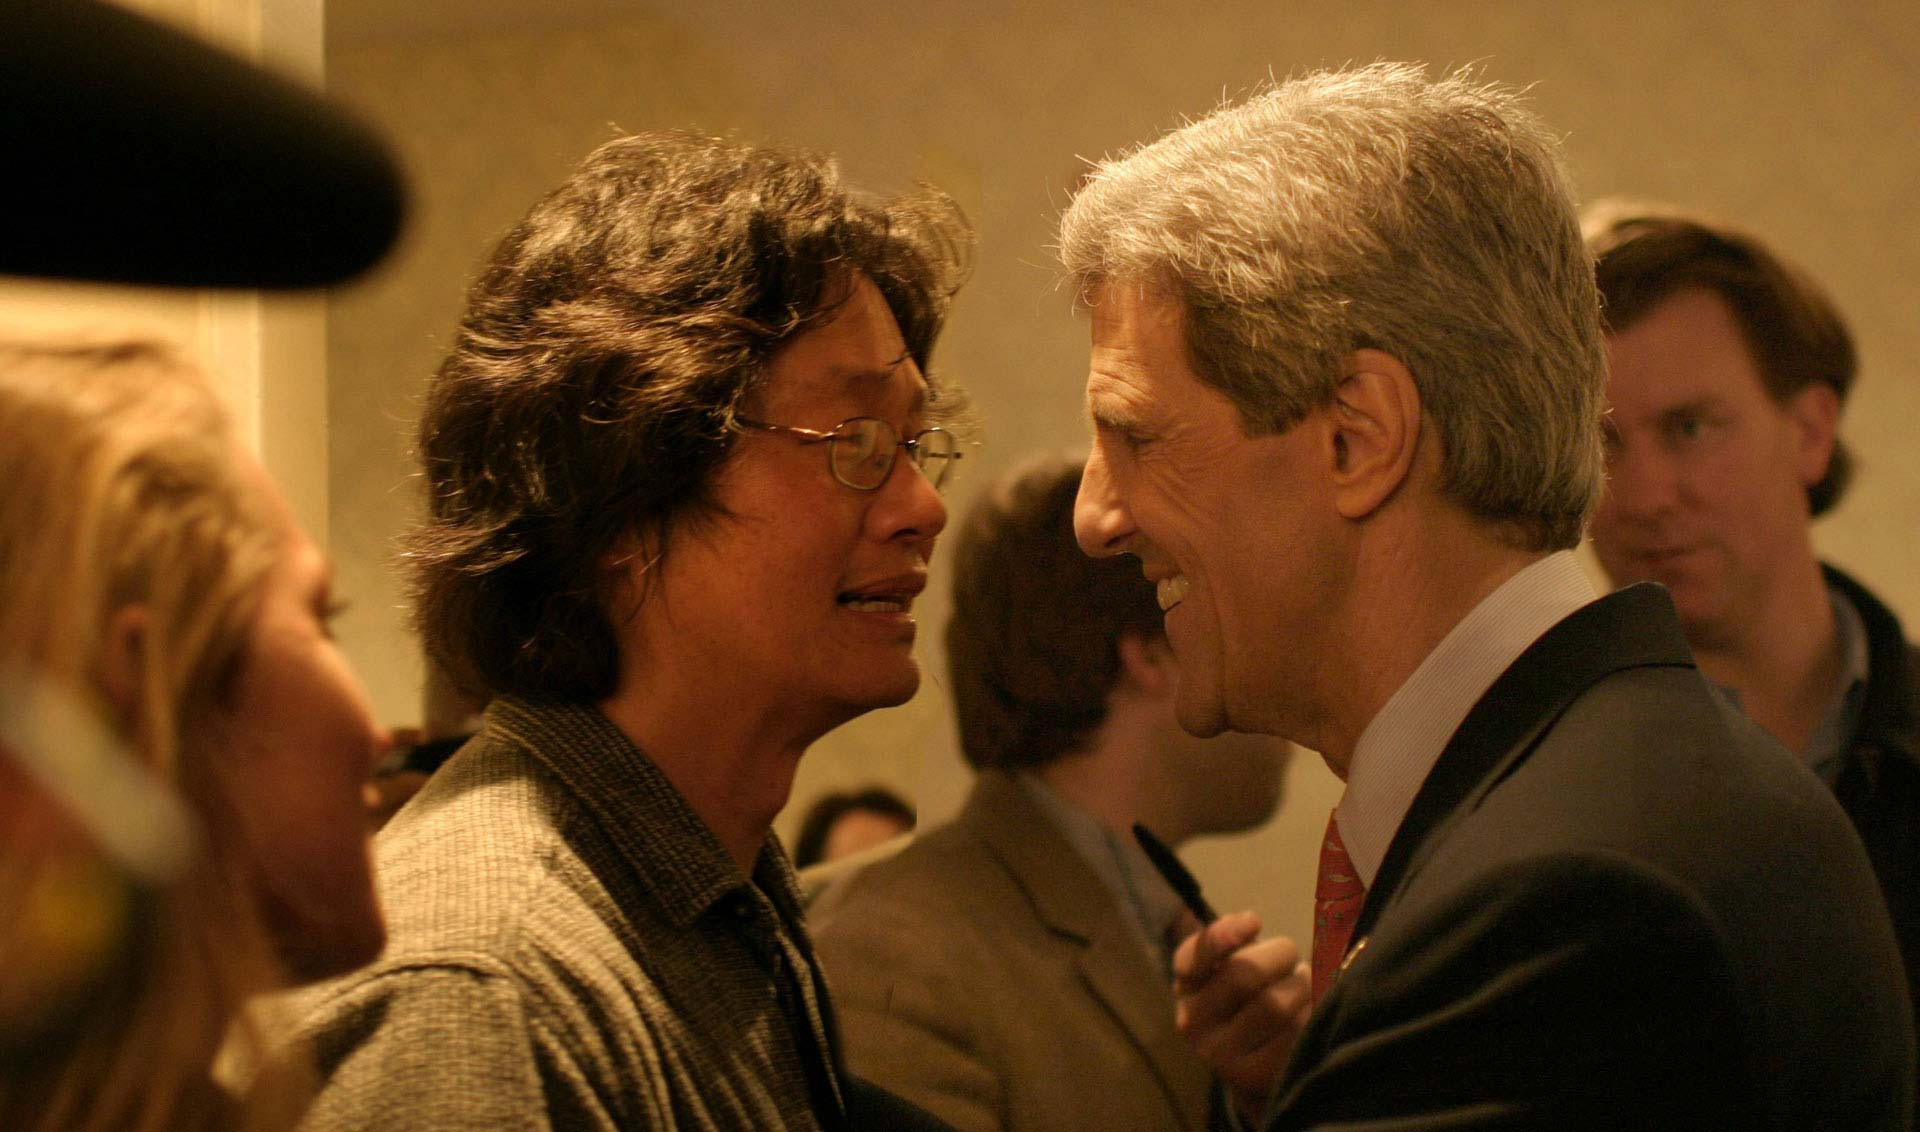 Top Chinese-American Photojournalist John Chao, John Kerry, in New Hampshire